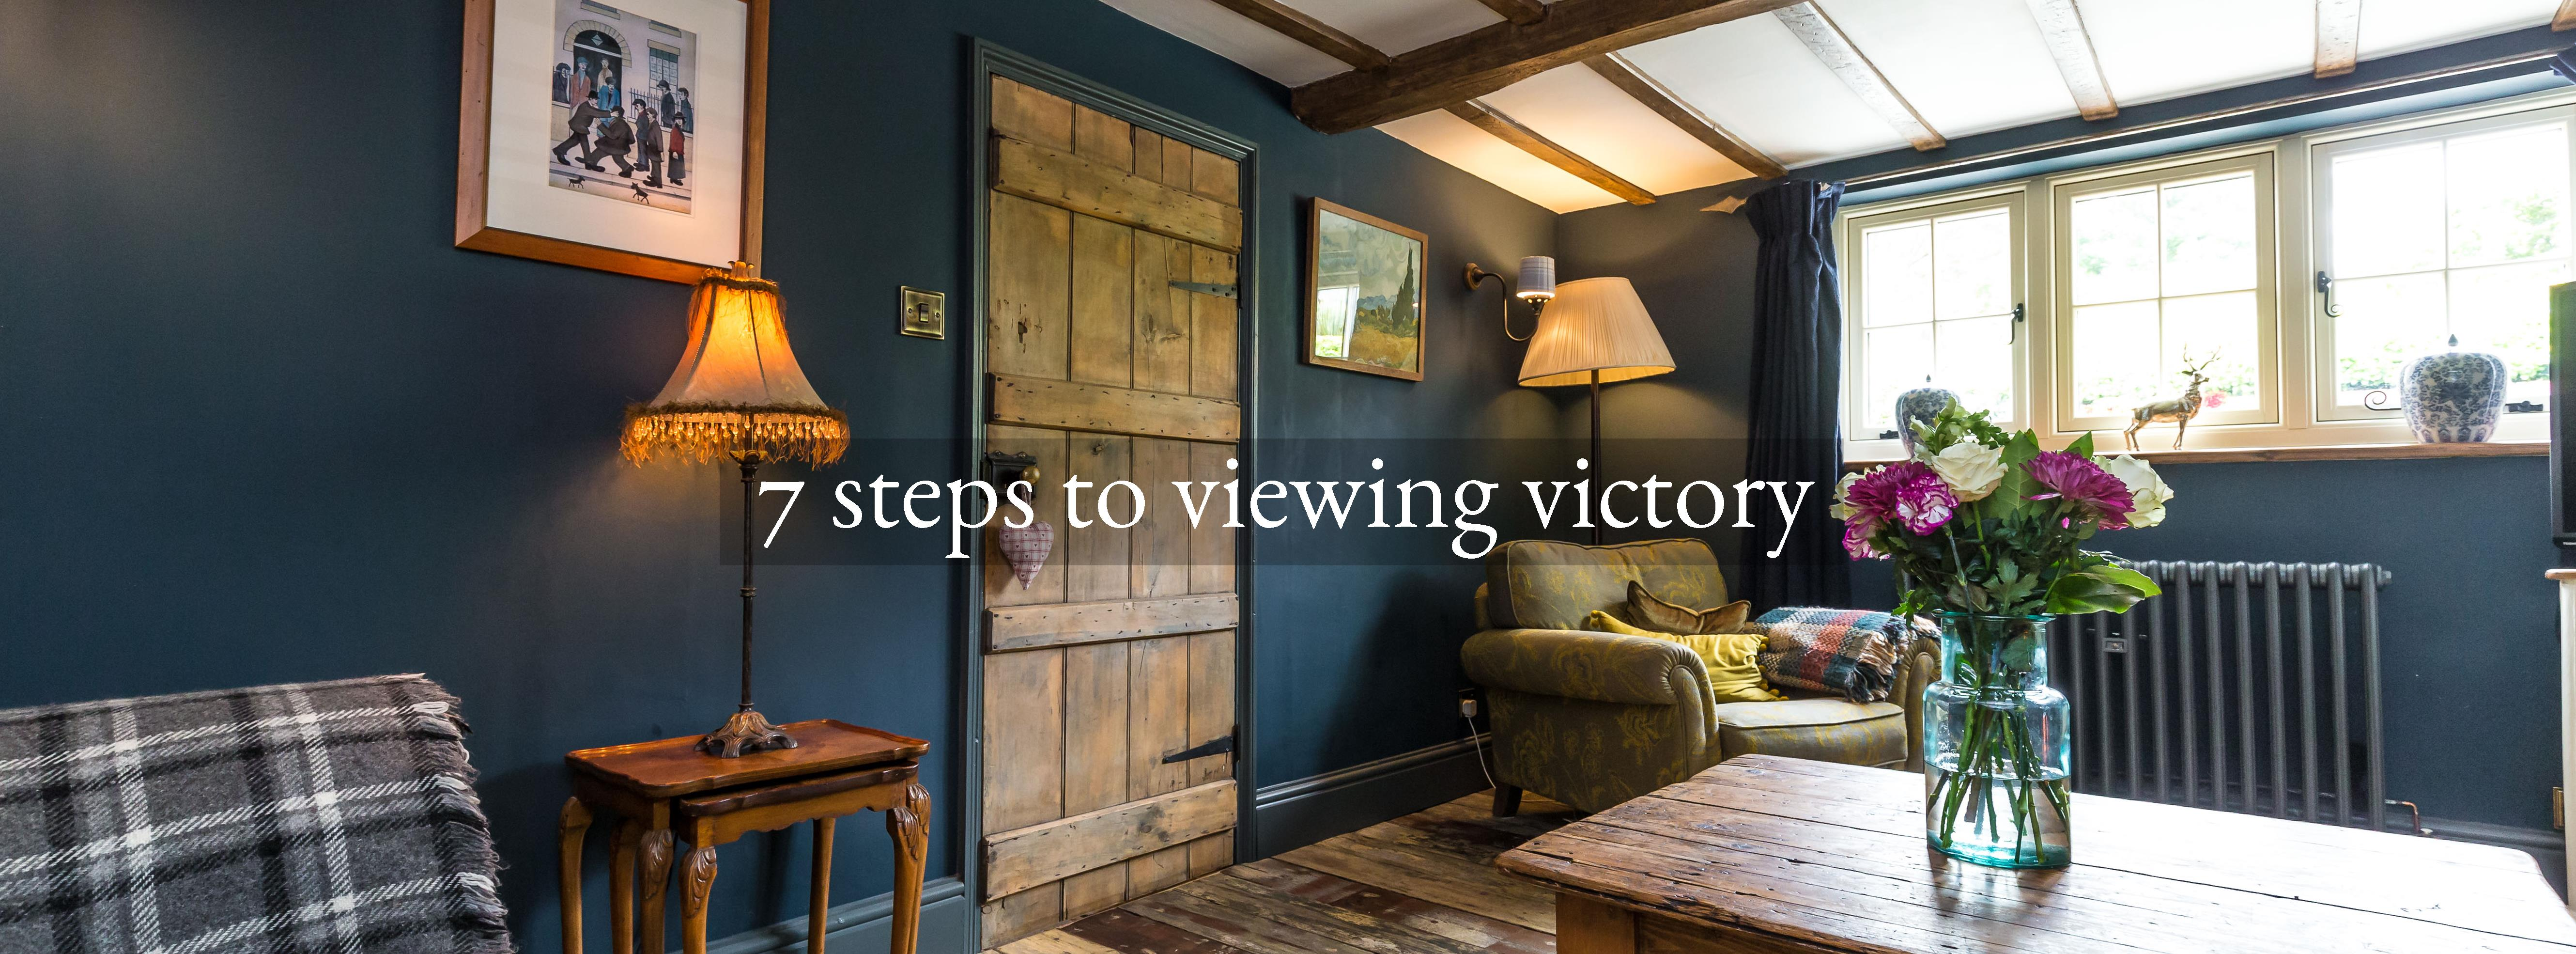 7_steps_to_viewing_victory_-_header